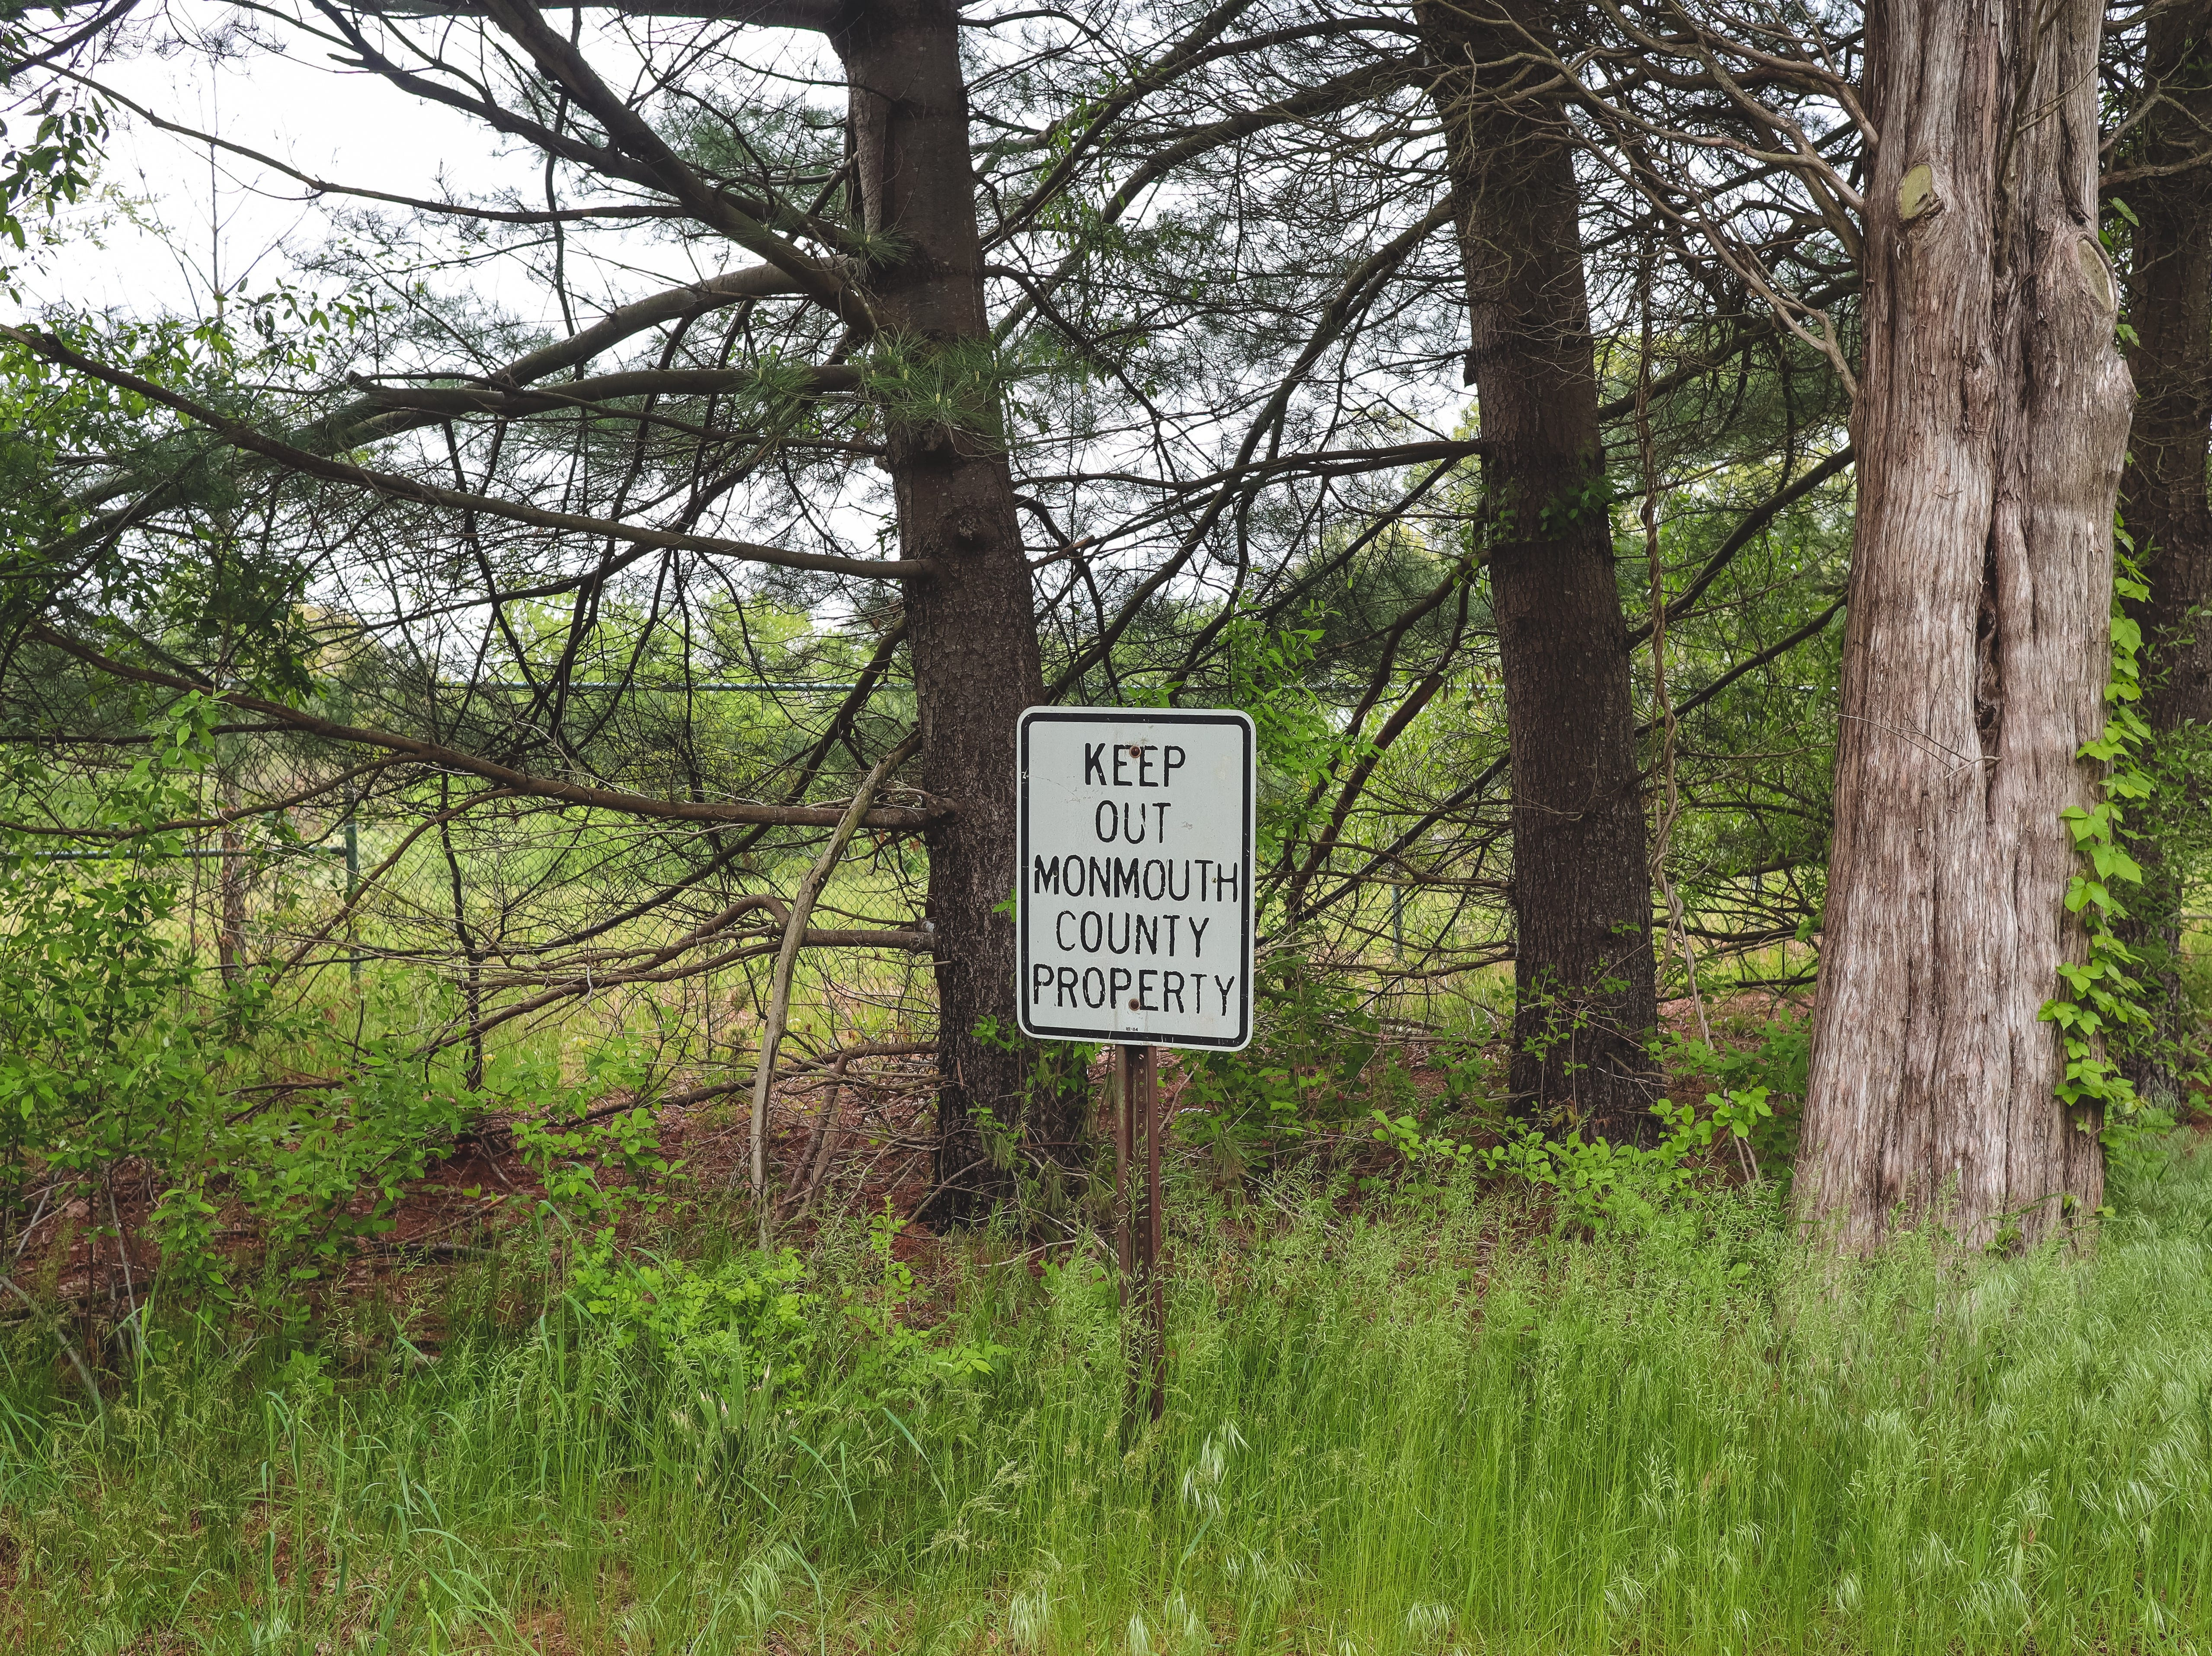 A fence keeps trespassers out of the Monmouth County Reclamation Center in Tinton Falls.